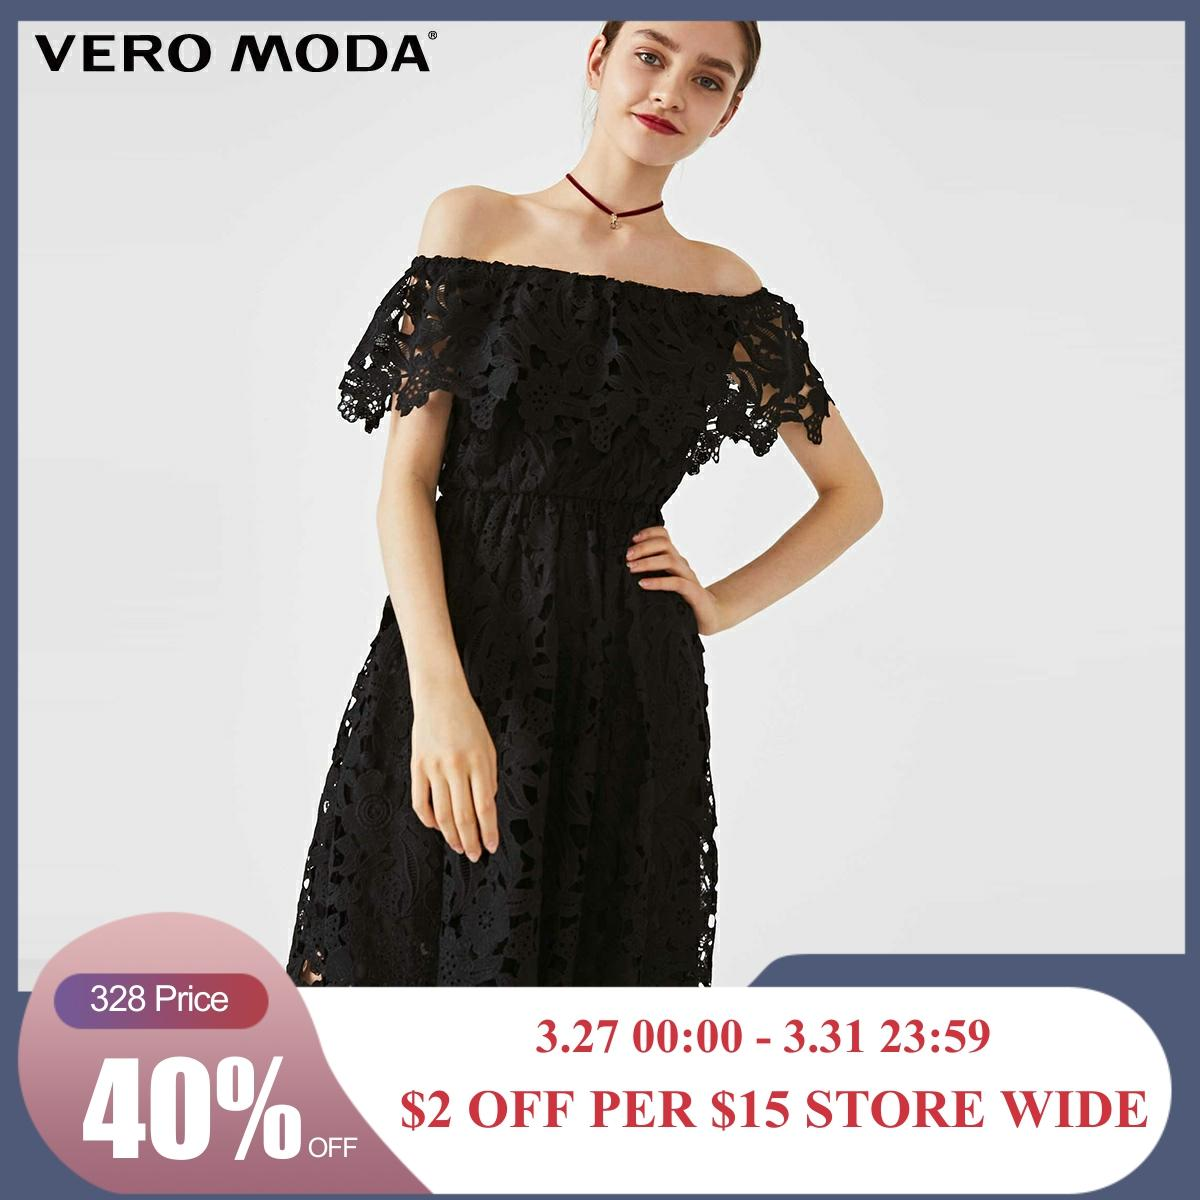 Vero Moda Women's Silky Lining Cinched Waist Lace Party Dress | 31927B568